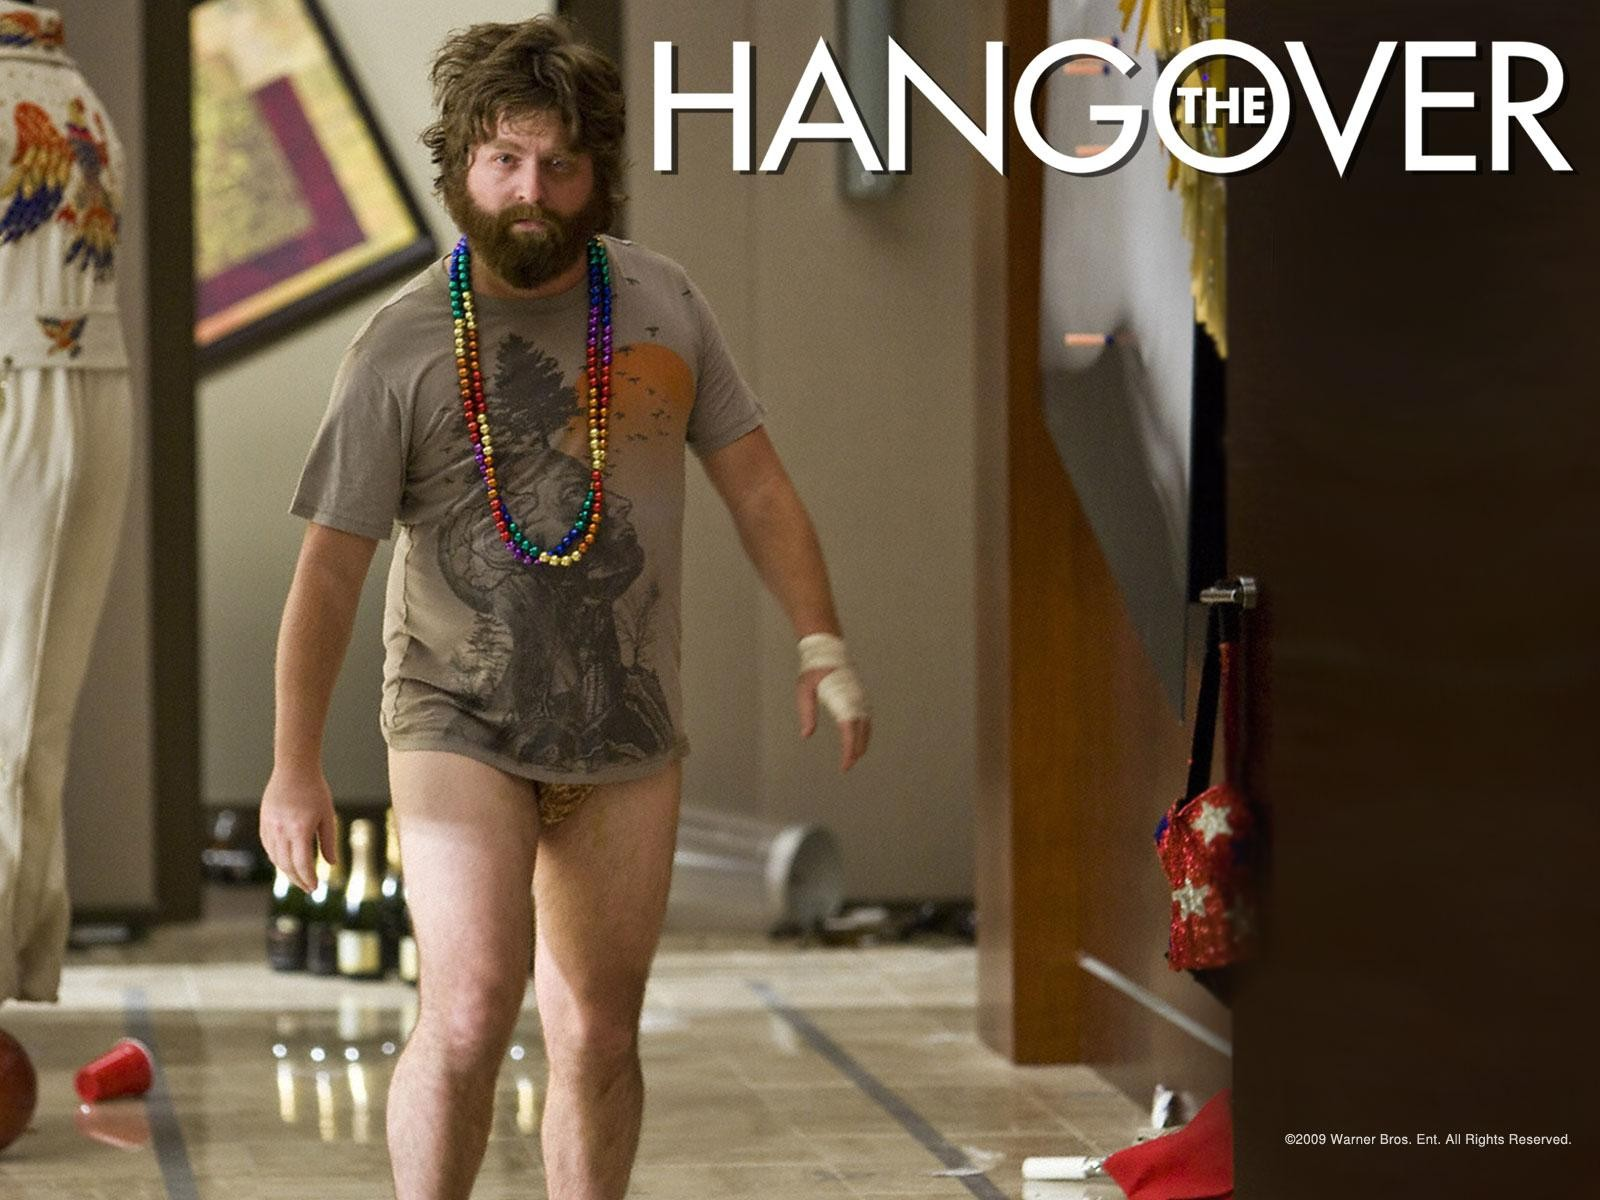 Un wallpaper del film Una notte da leoni con Zach Galifianakis